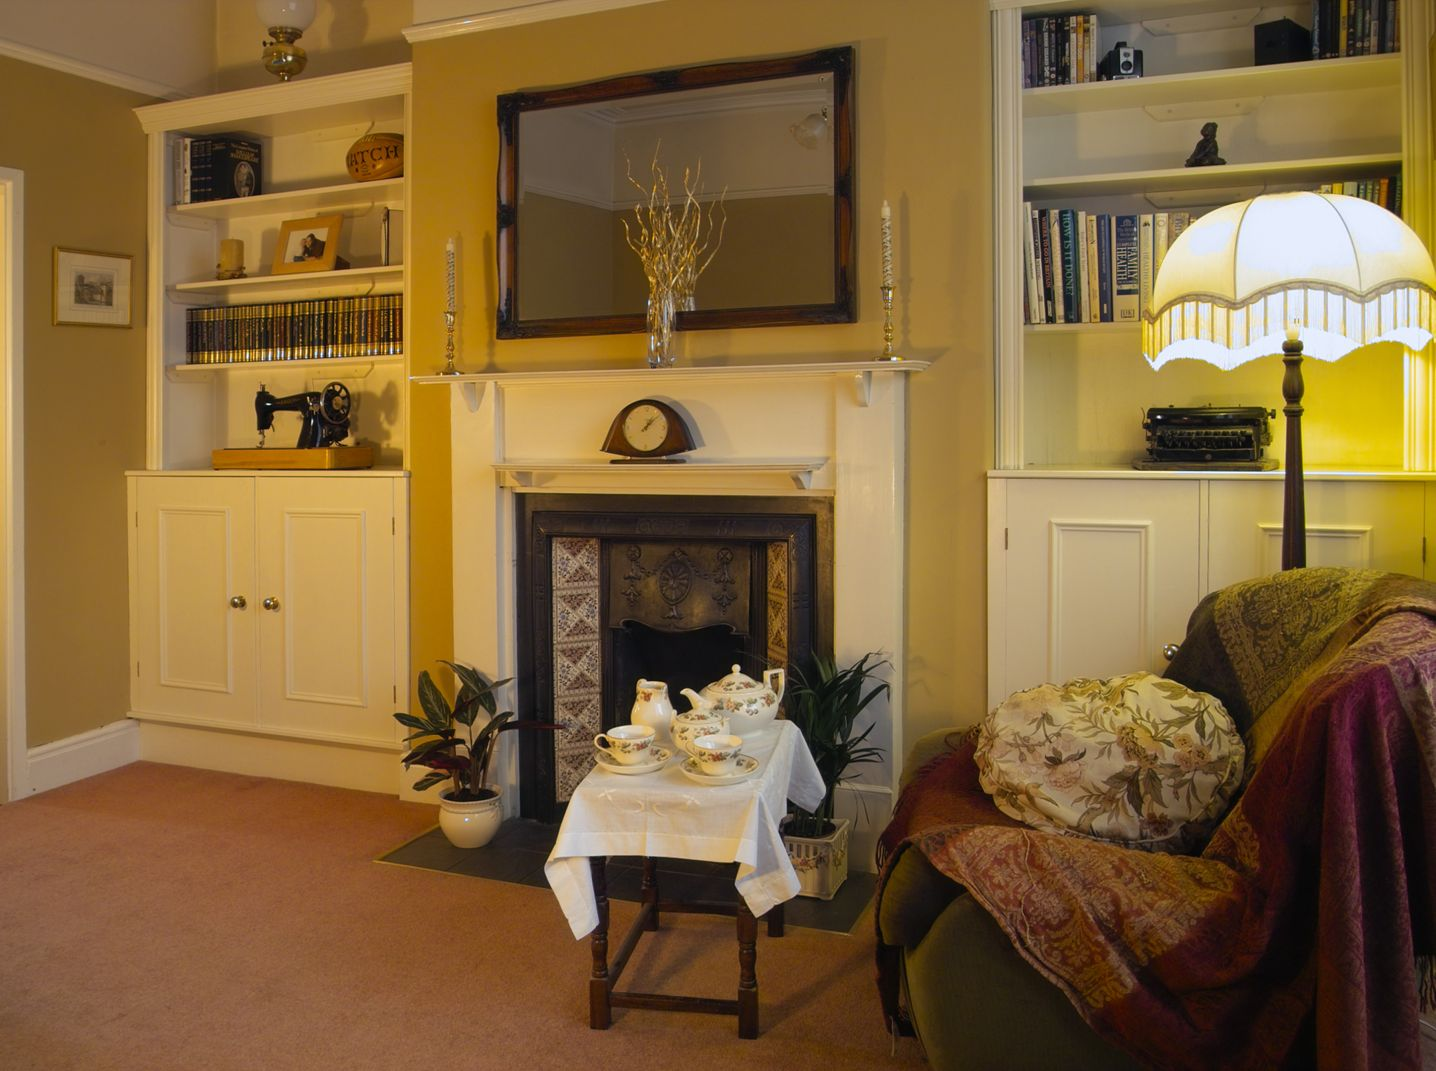 a selection of living rooms - here, a traditional Edwardian sitting room